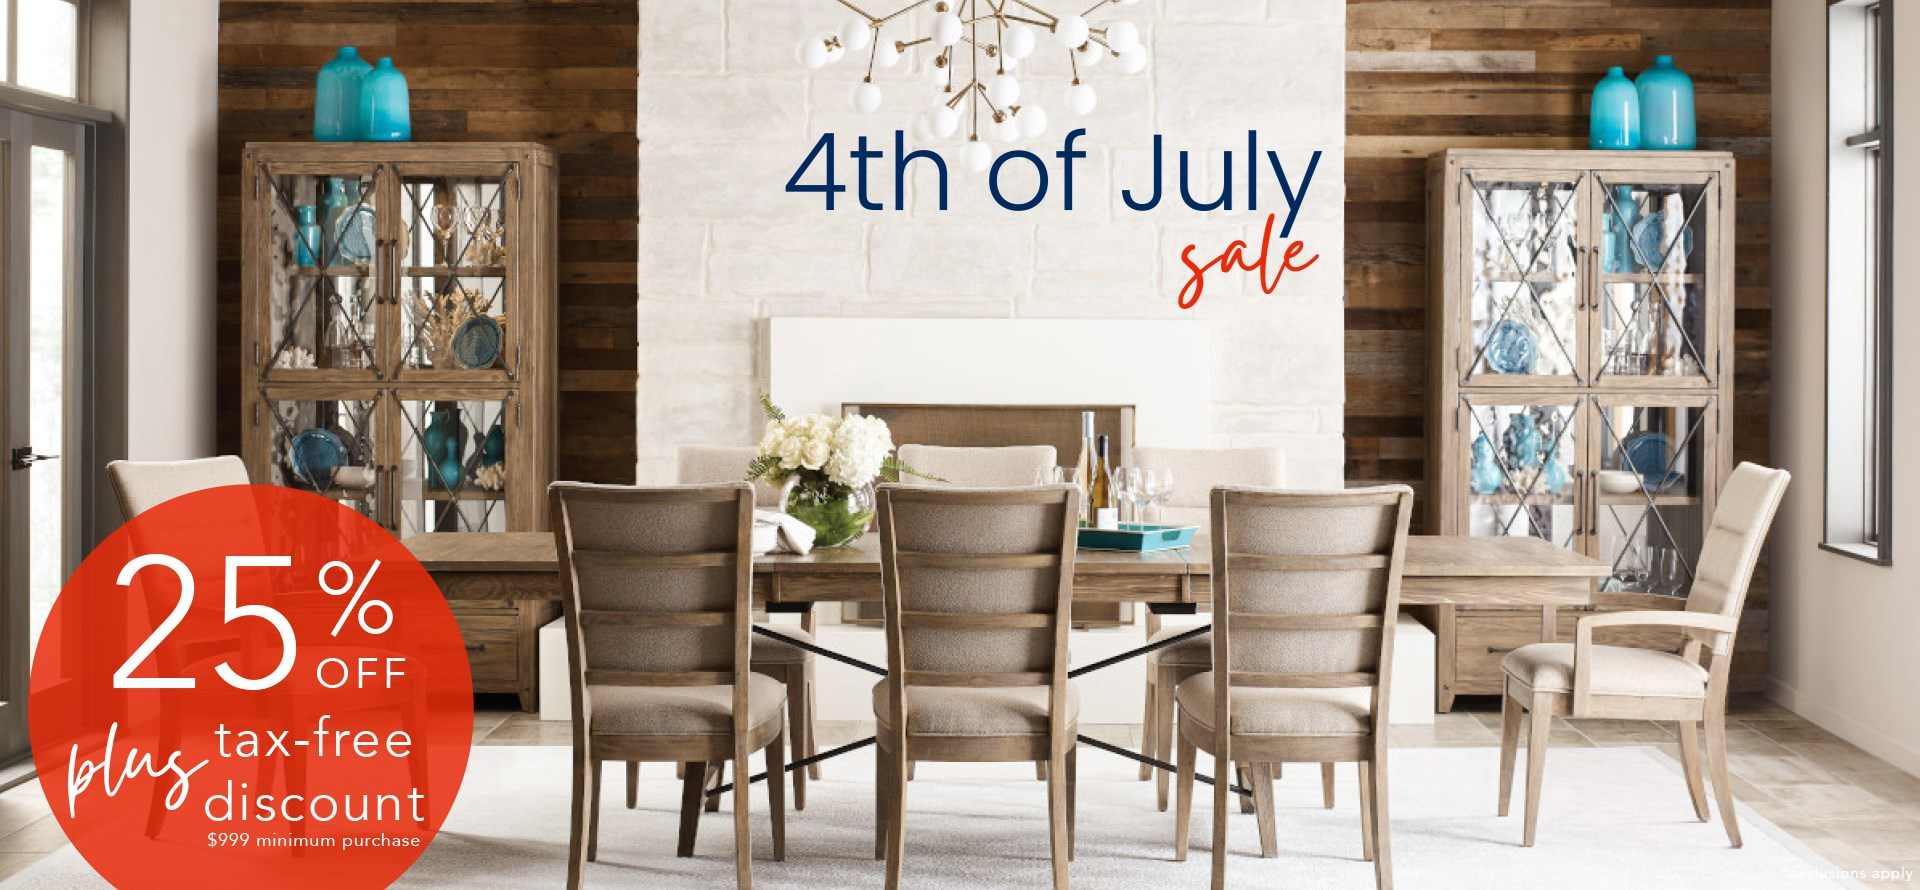 4th of july sale 25% off plus tax free discount